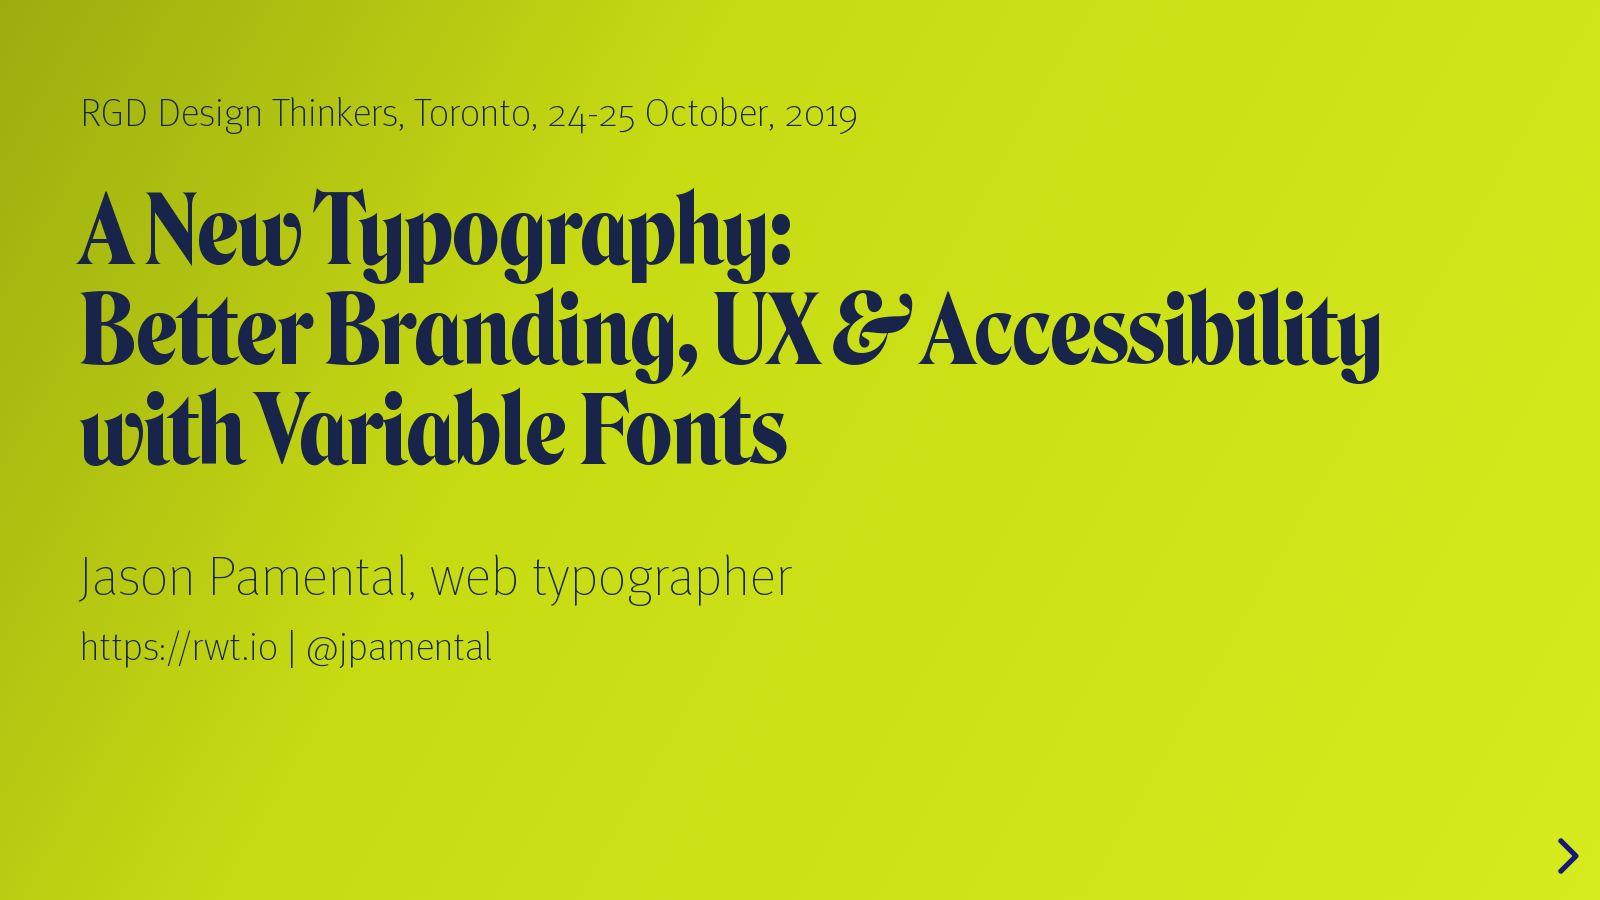 A New Typography: Better Branding, UX, and Accessibility with Variable Fonts